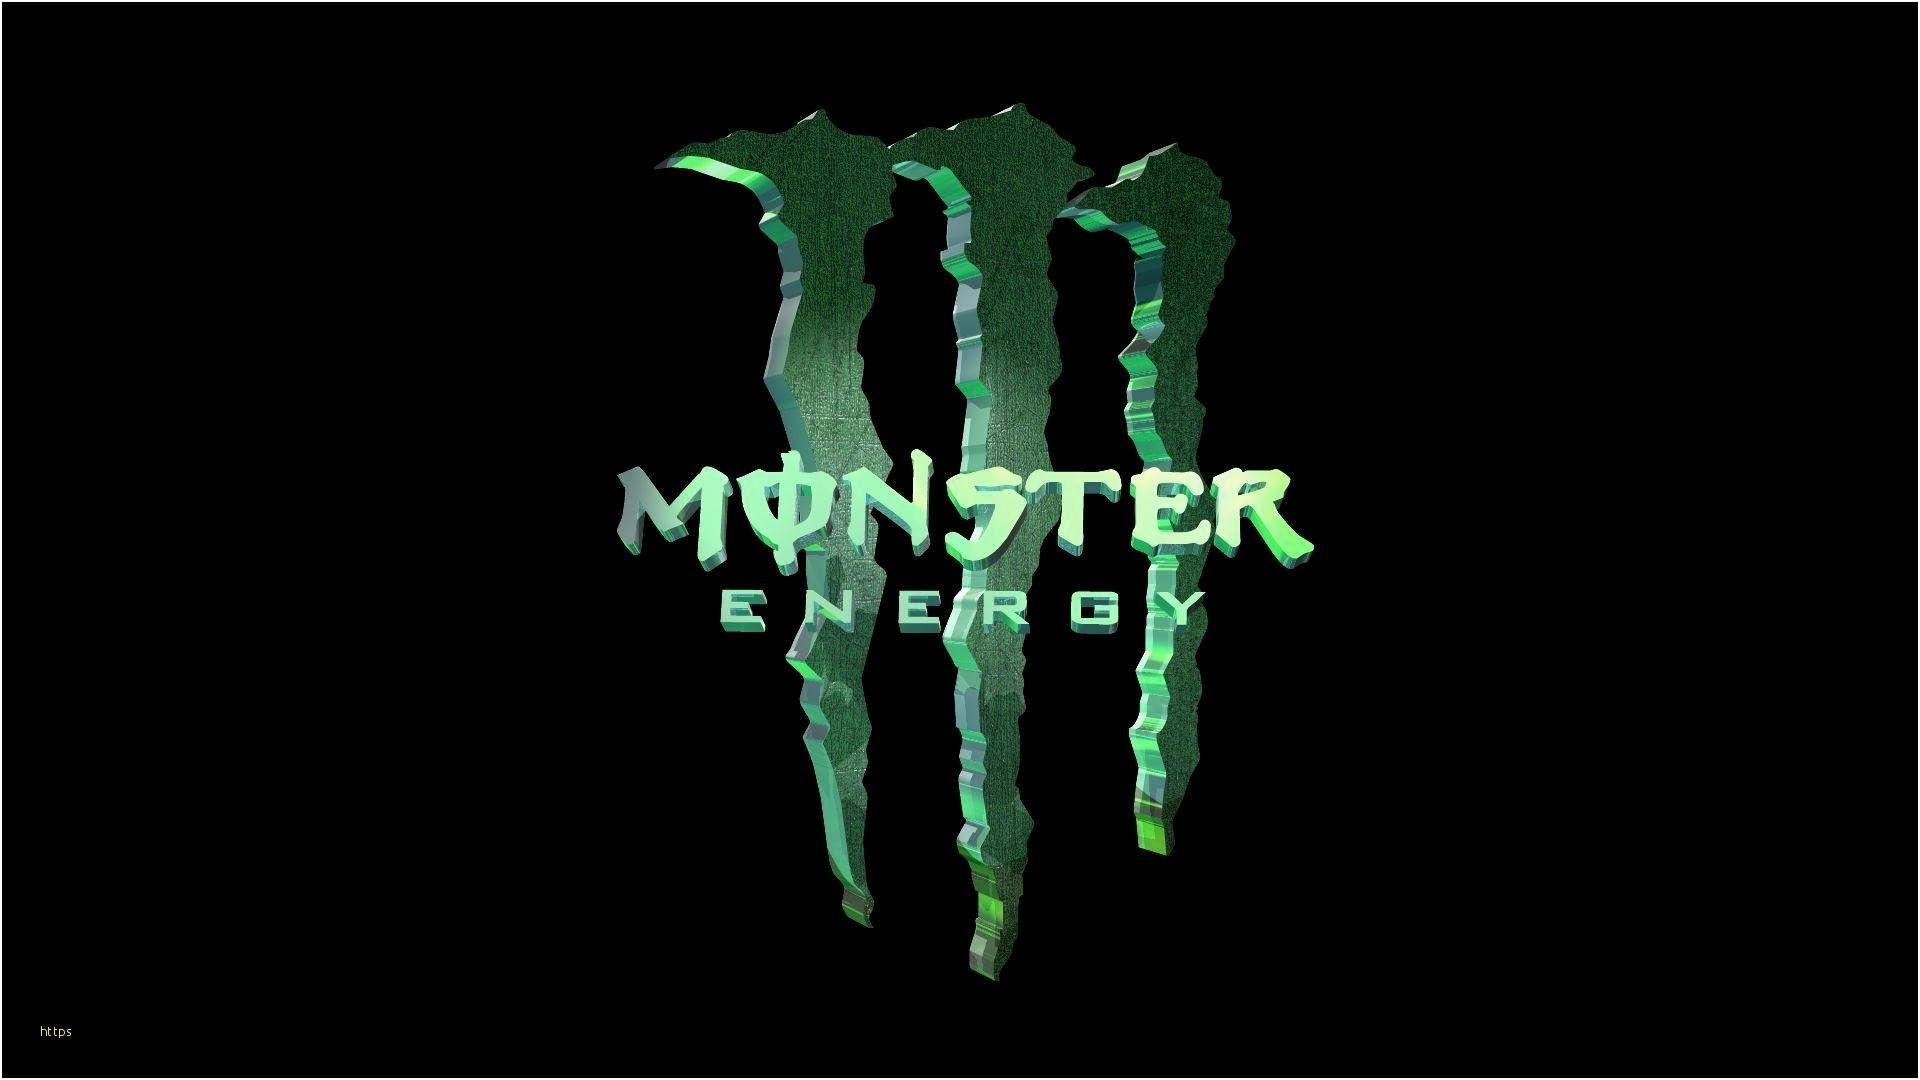 1920x1080 Monster Energy Wallpaper New Monster Energy Wallpapers Hd 2015 Wallpaper  Cave .